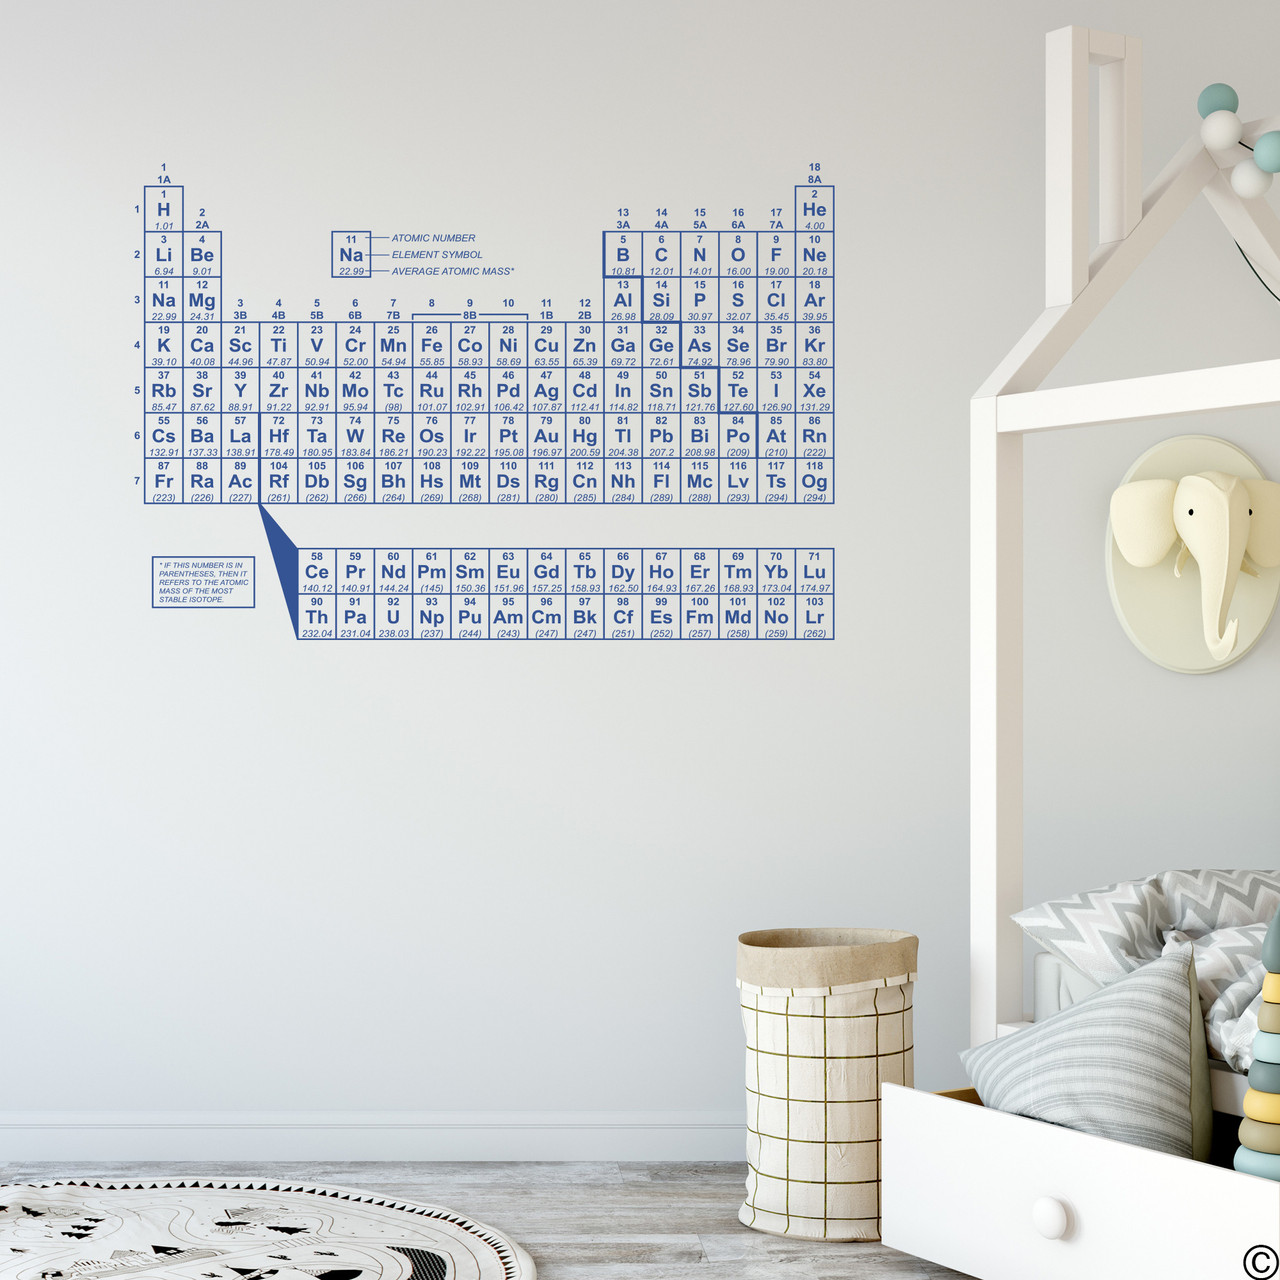 The advance periodic table wall decal for high school science and beyond, shown here on a kids room wall in limited edition denim.